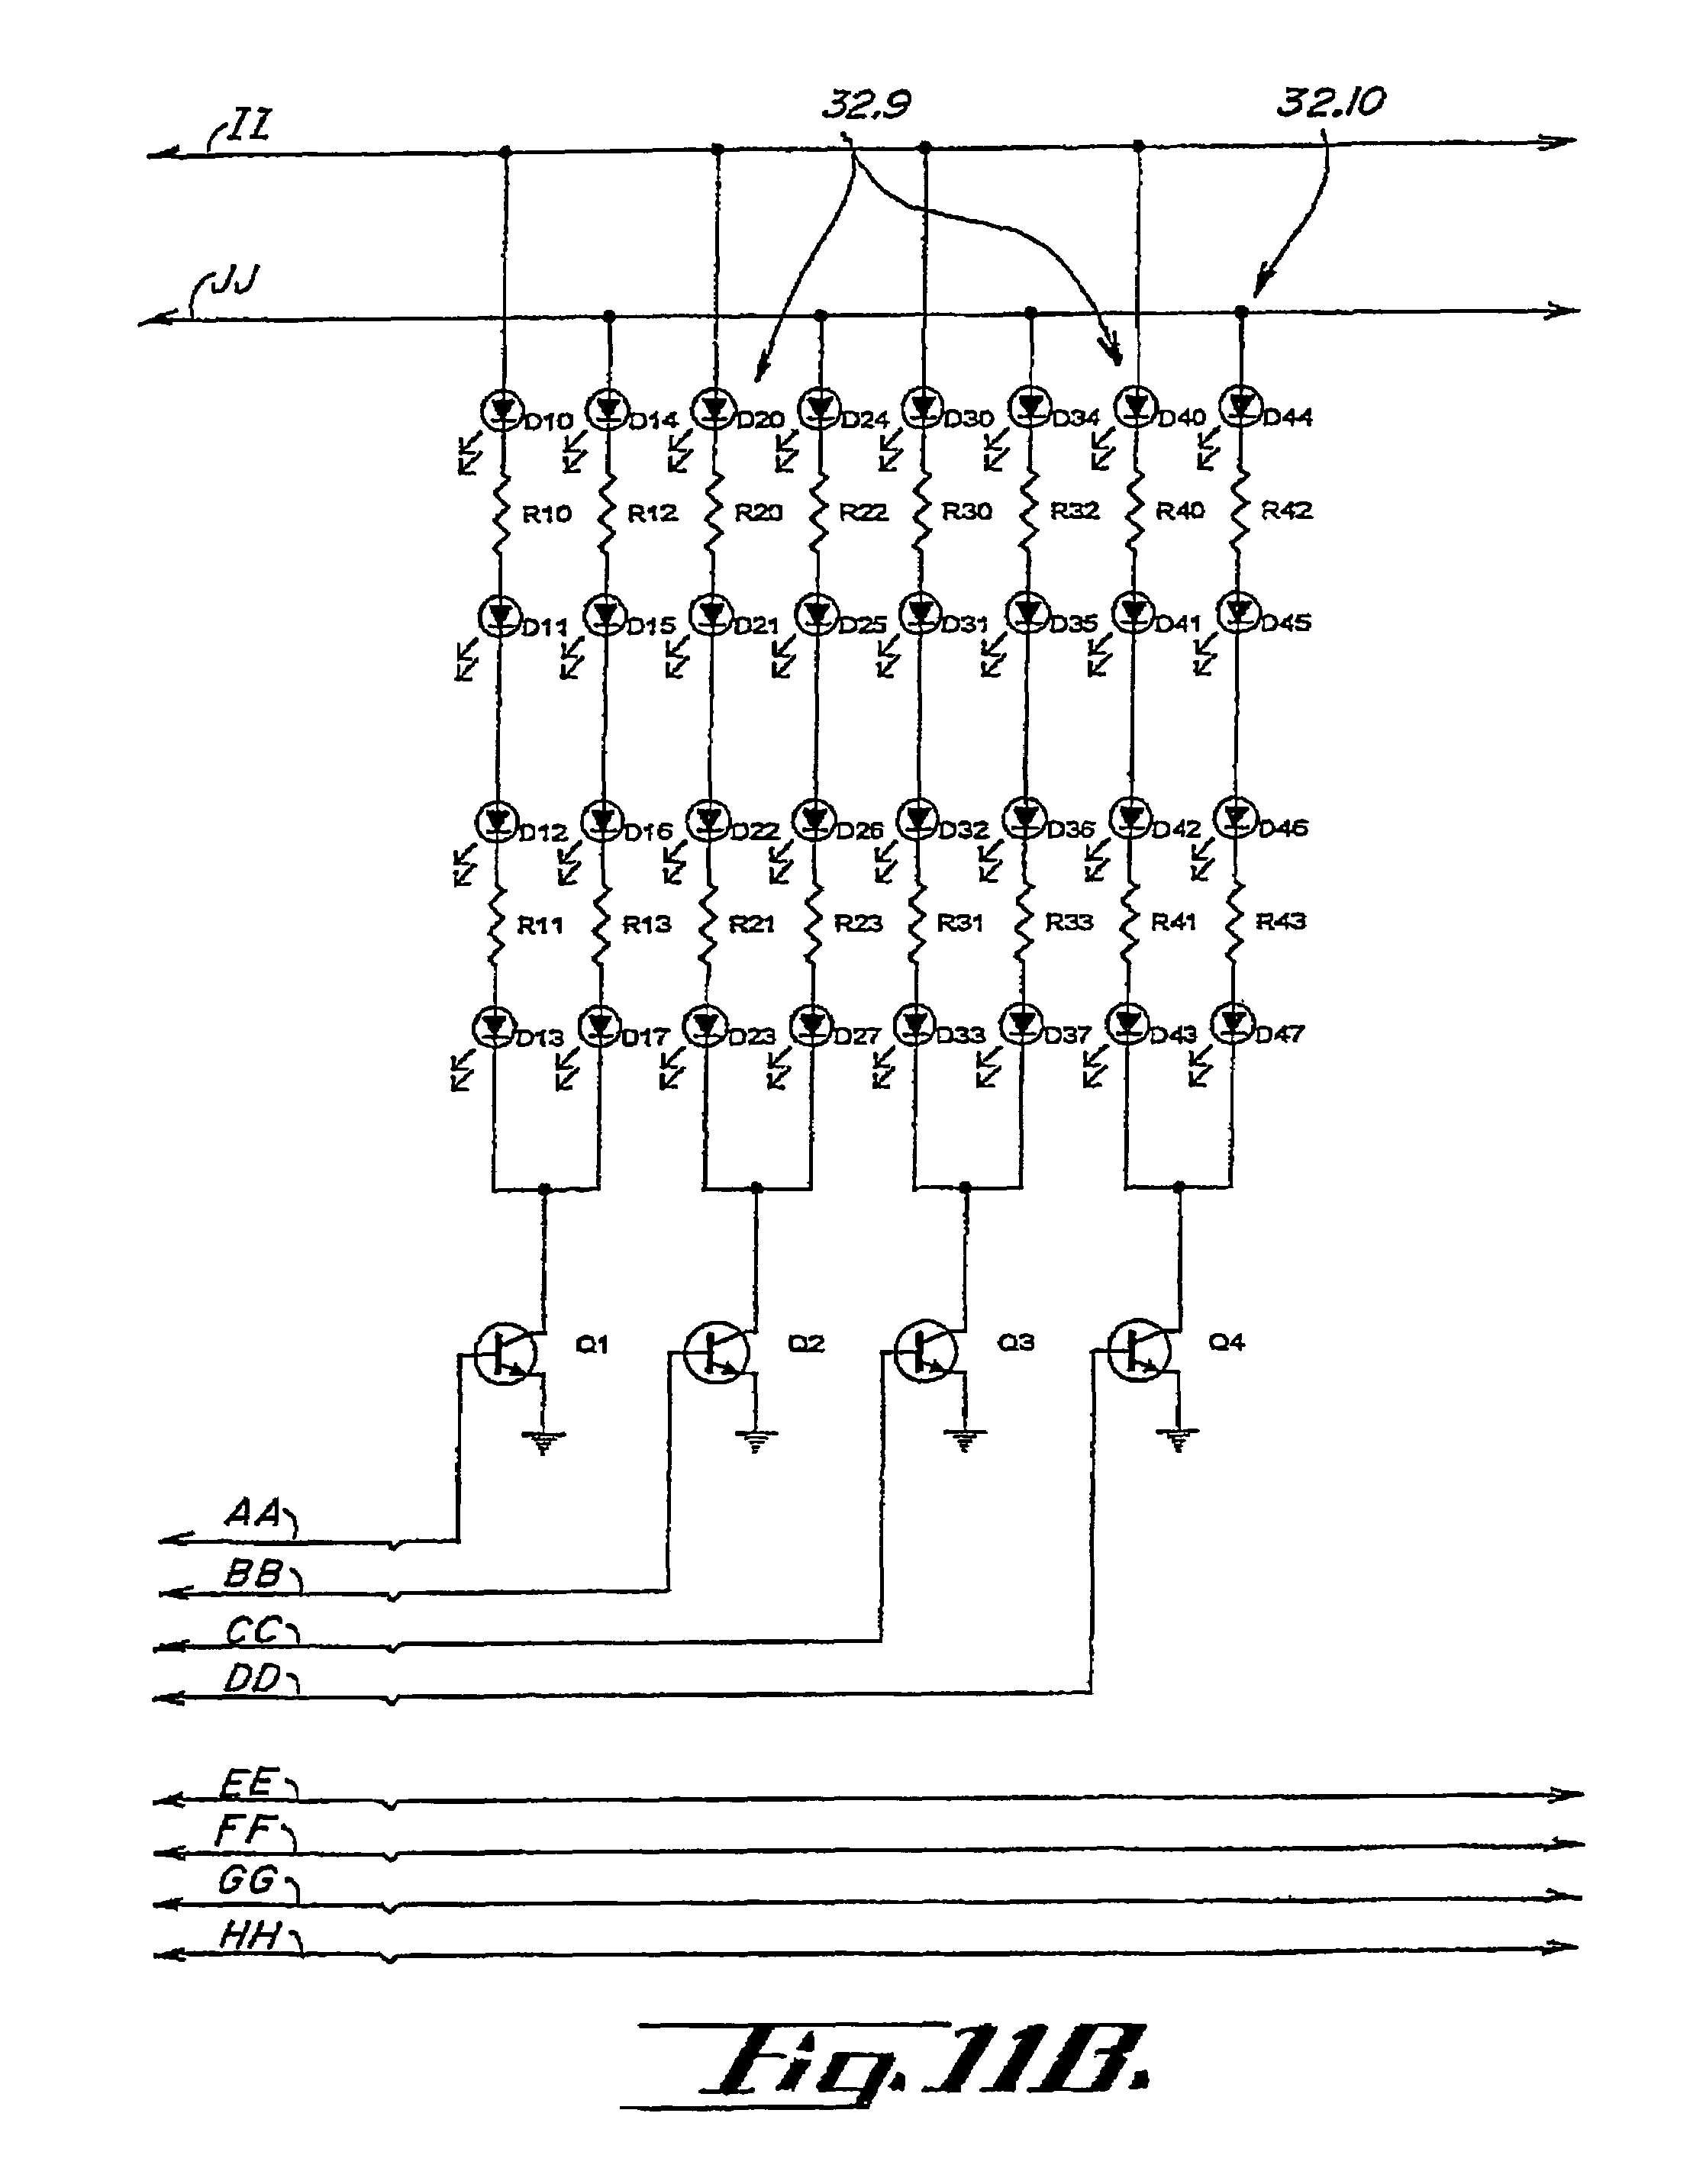 US07561036 20090714 D00006 911ep wiring diagram 911ep ls12 flash patterns \u2022 wiring diagrams code 3 mx7000 wiring diagram at sewacar.co